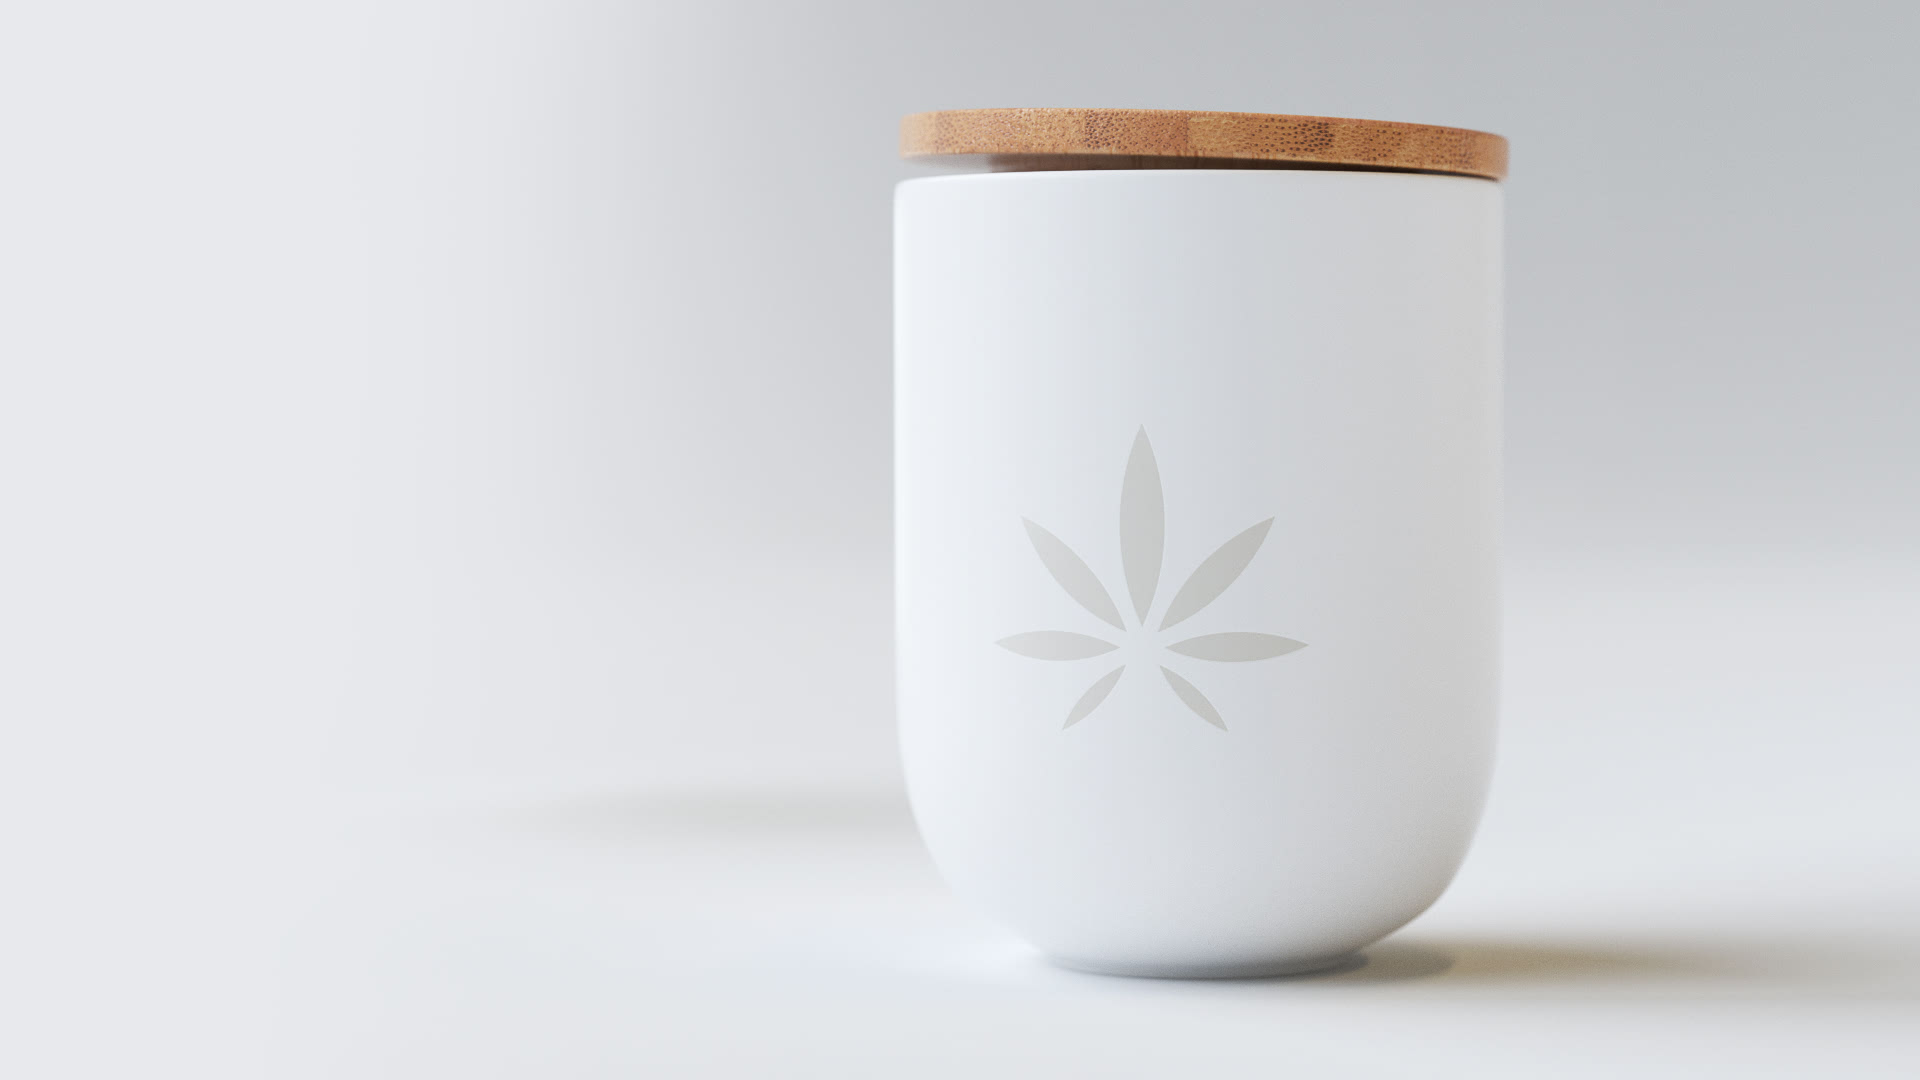 Clay model of pot with cannabis leaf print